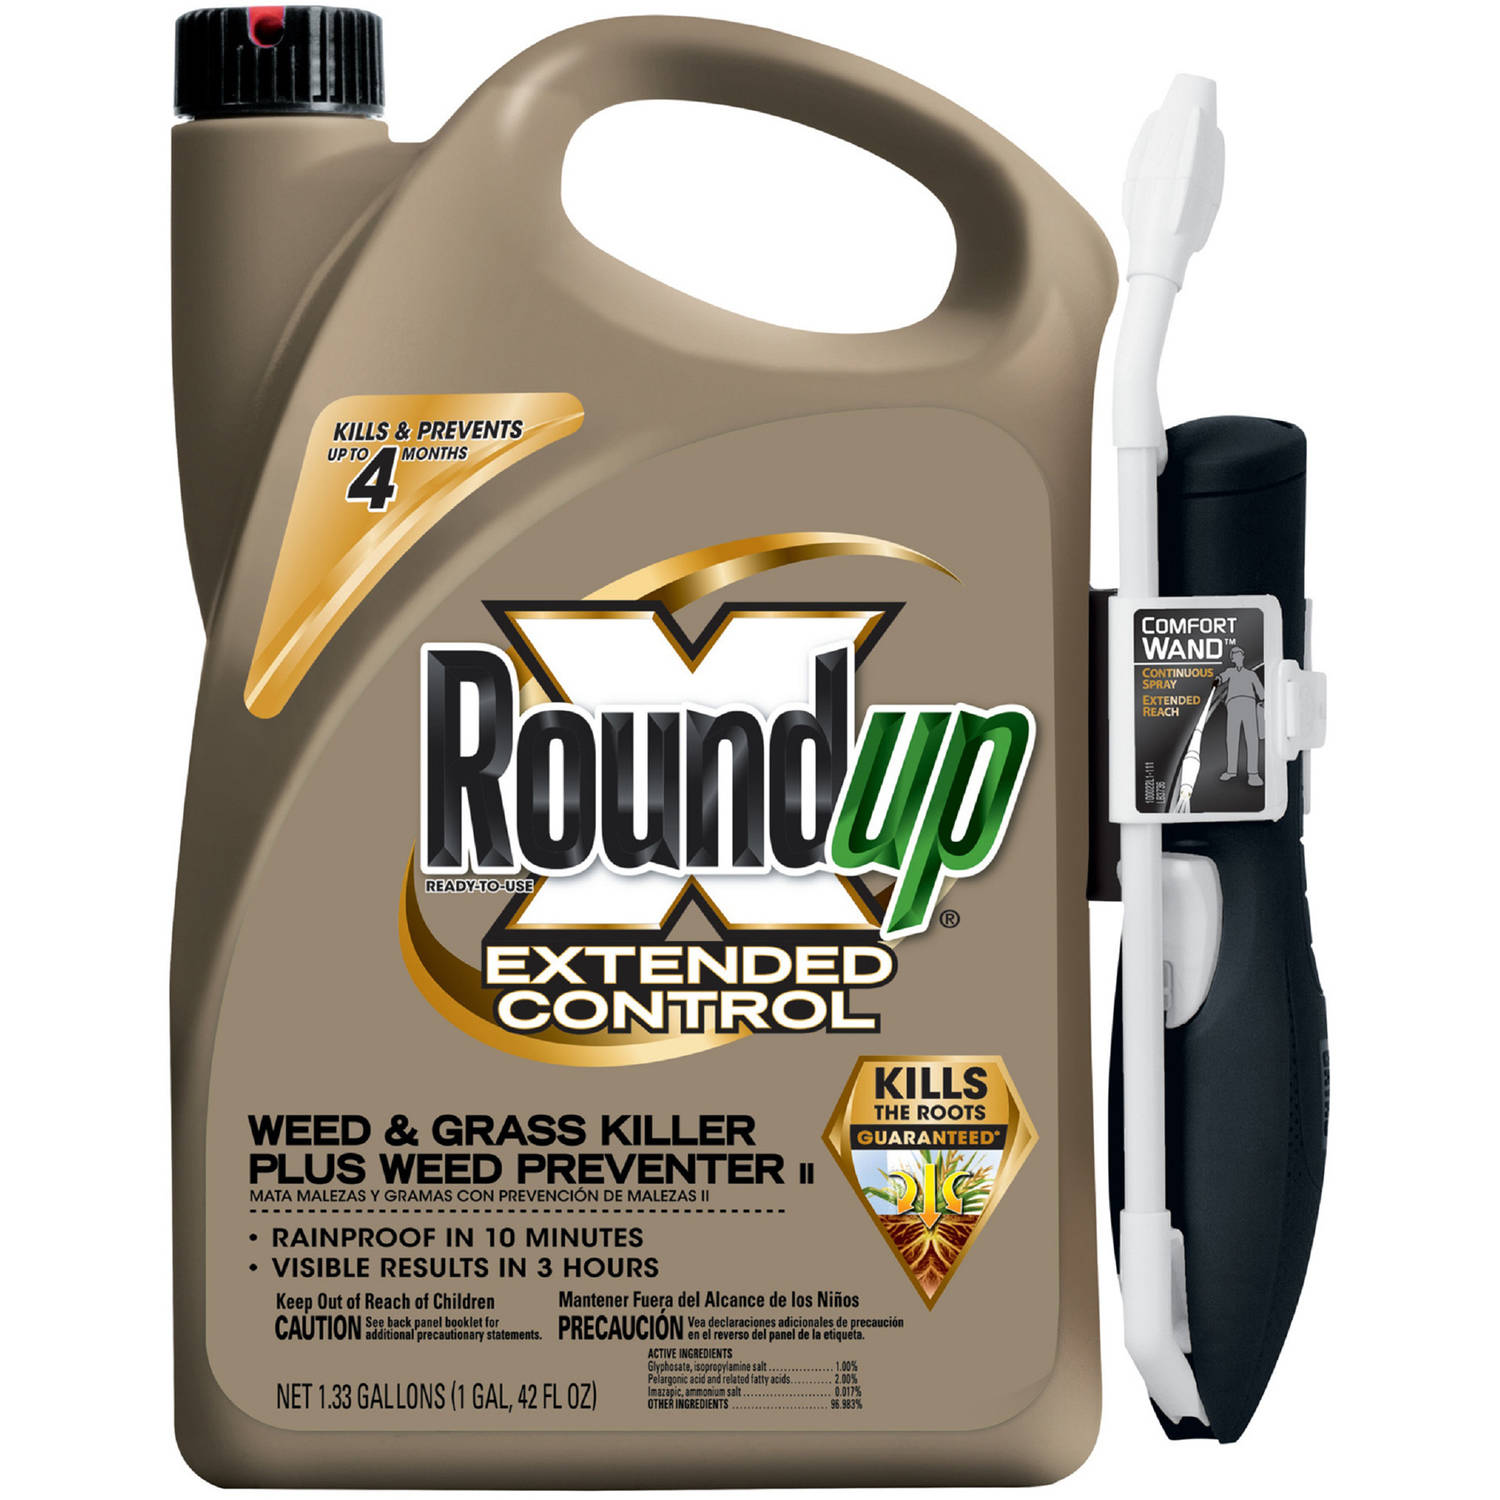 Roundup Ready-To-Use Extended Control Weed & Grass Killer Plus Weed Preventer One-Touch Wand, 1.33 gal